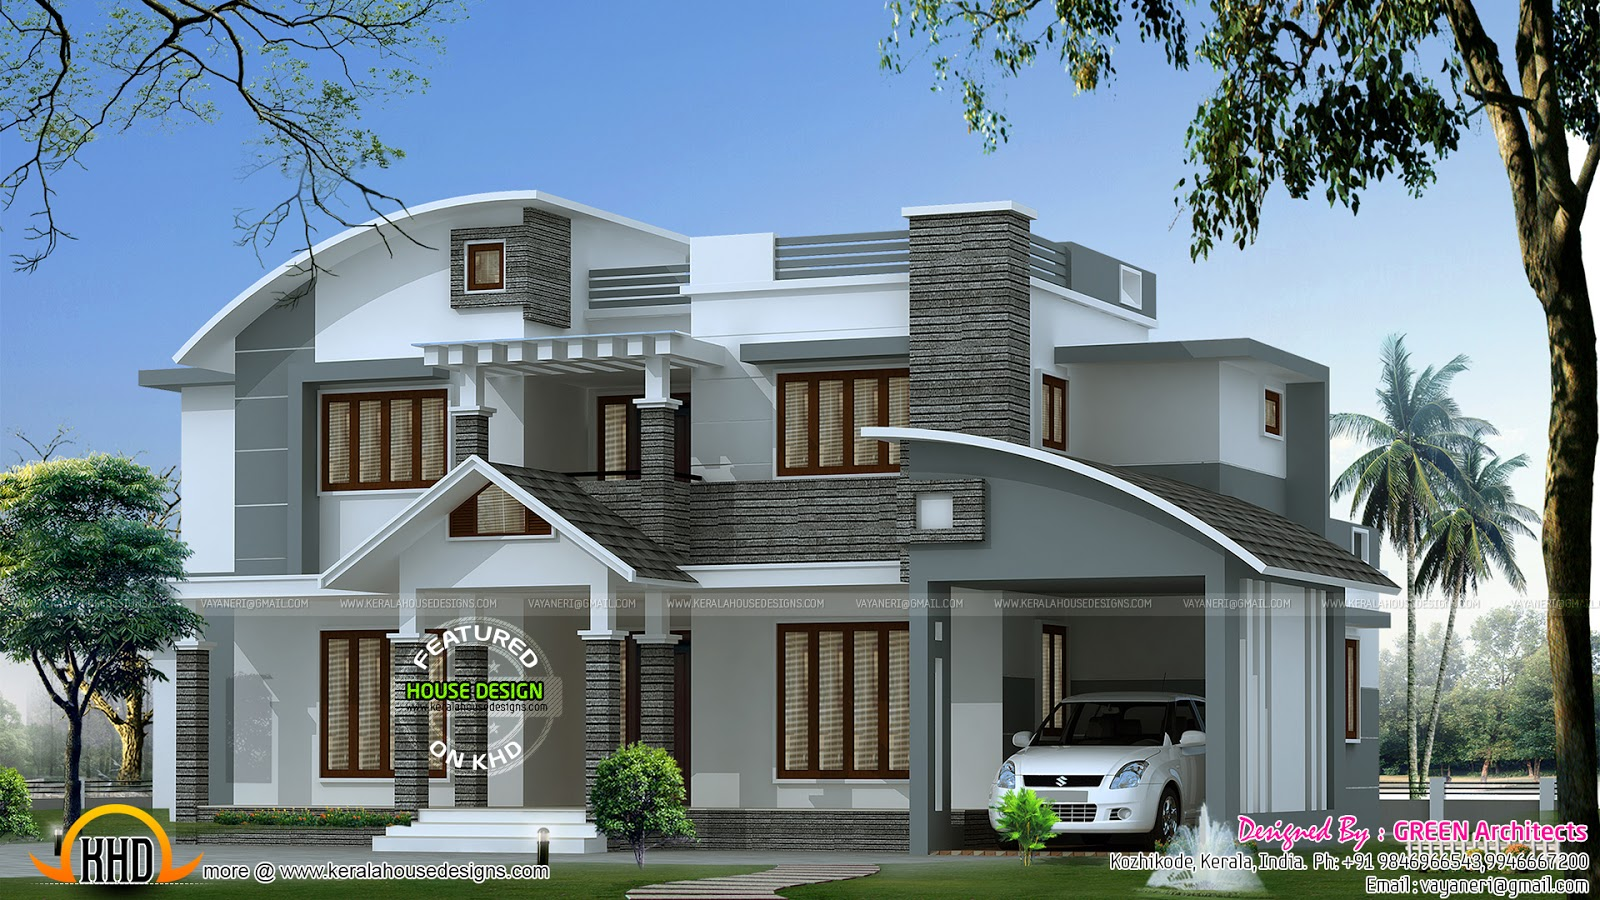 Contemporary mix house in 2500 sq ft kerala home design for 2500 to 3000 sq ft homes